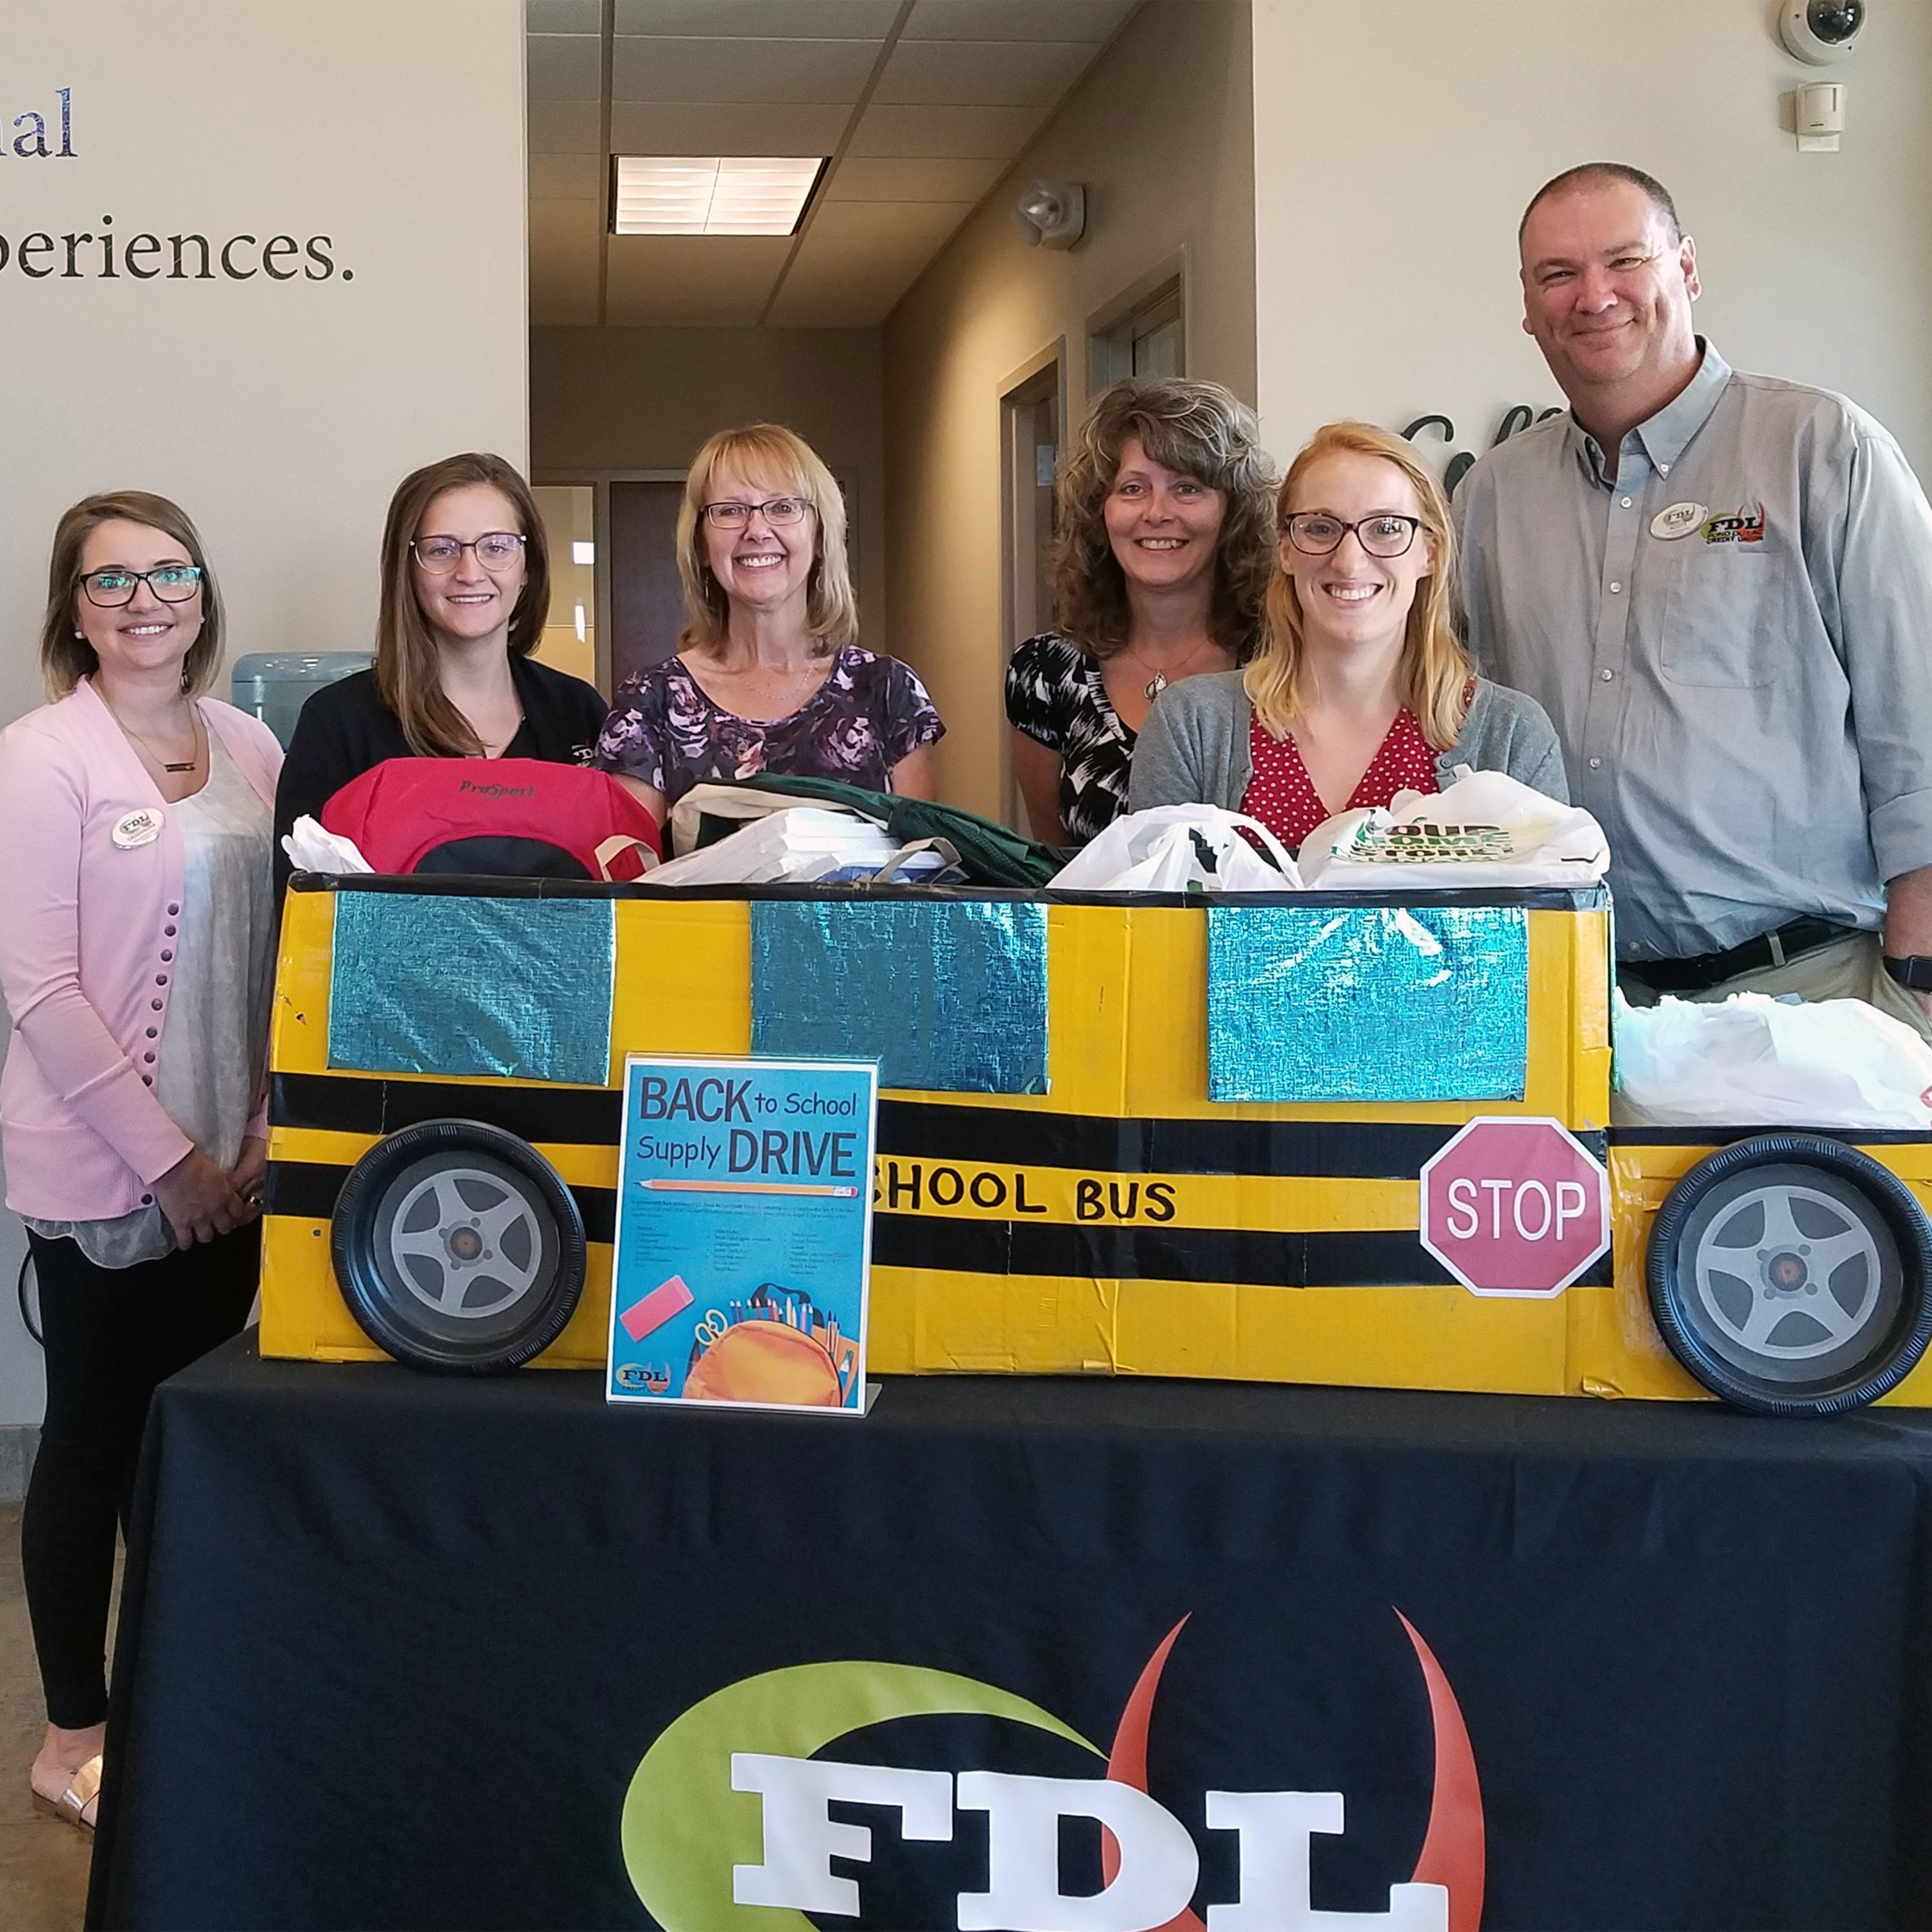 staff standing by school bus decorated box of school supplies